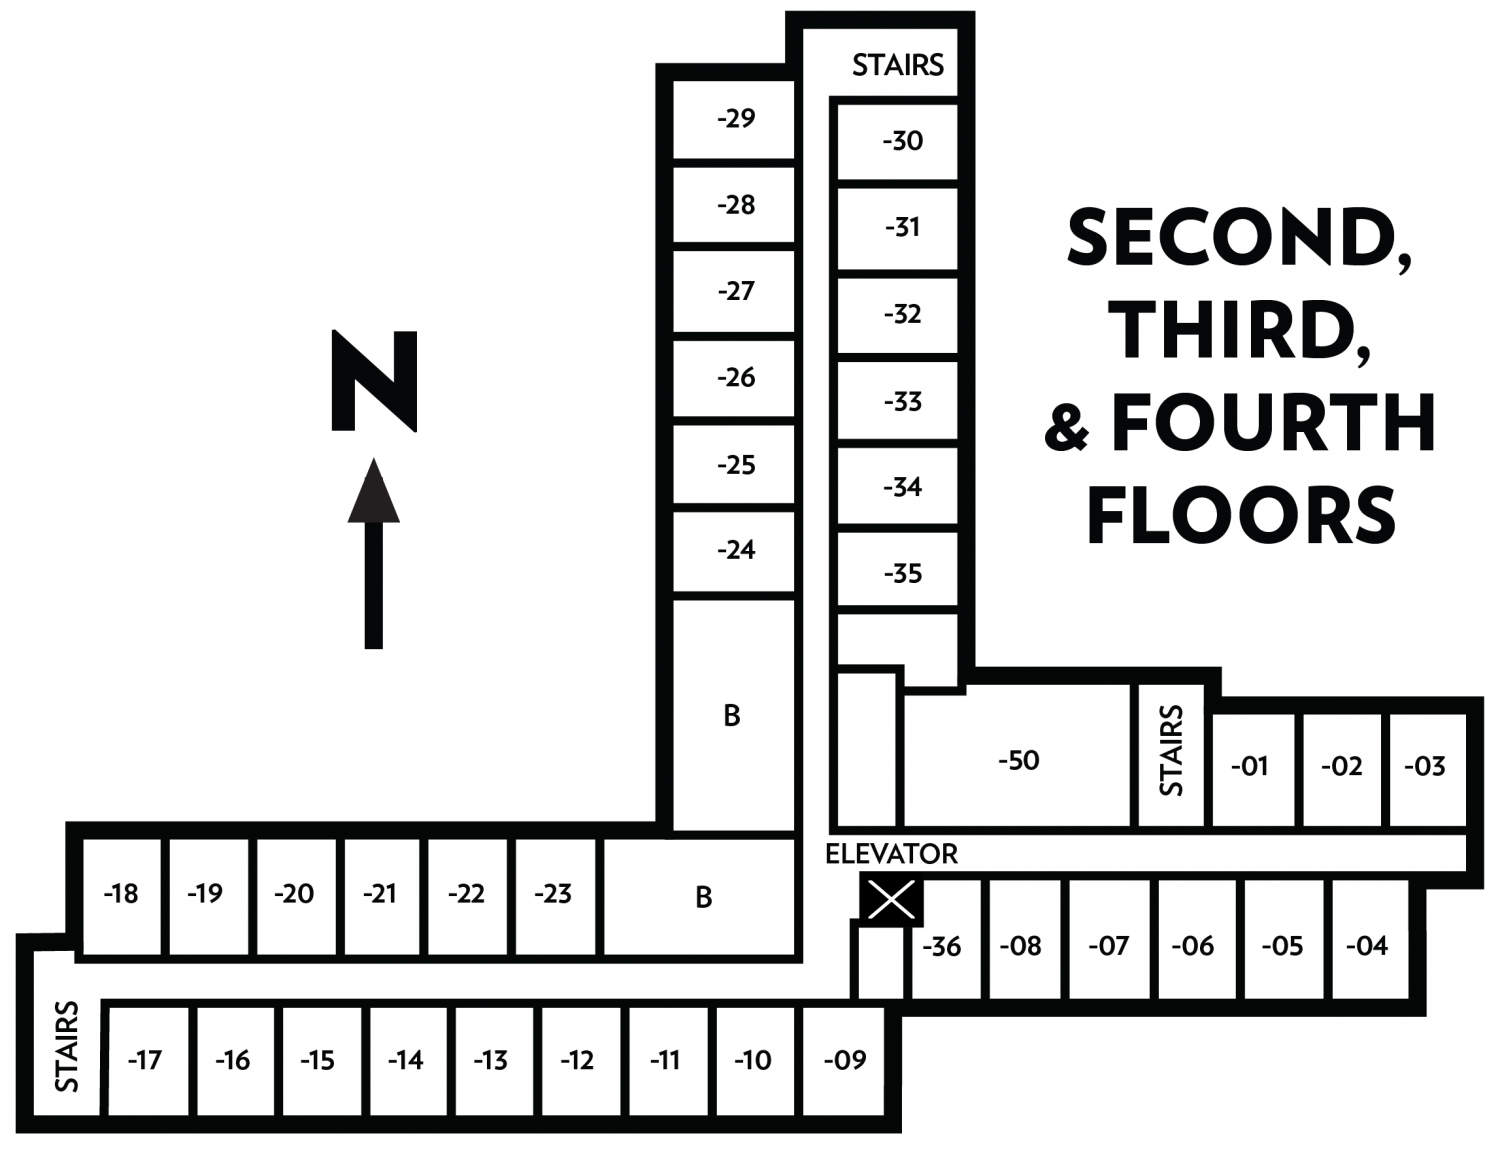 Bradley floor plan of second, third, and fourth floors